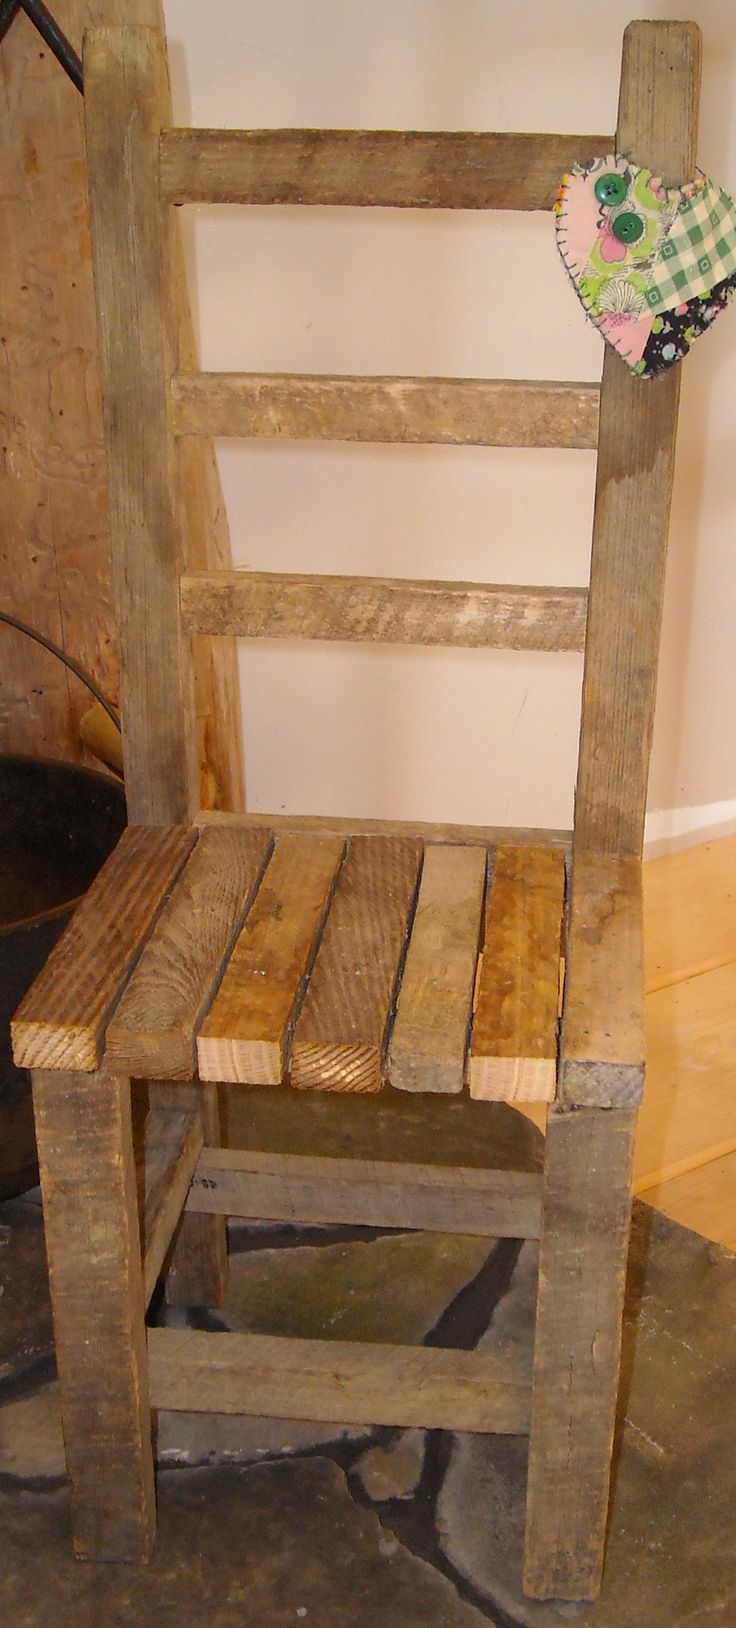 Little Chair My Son Made Using Old Tobacco Sticks